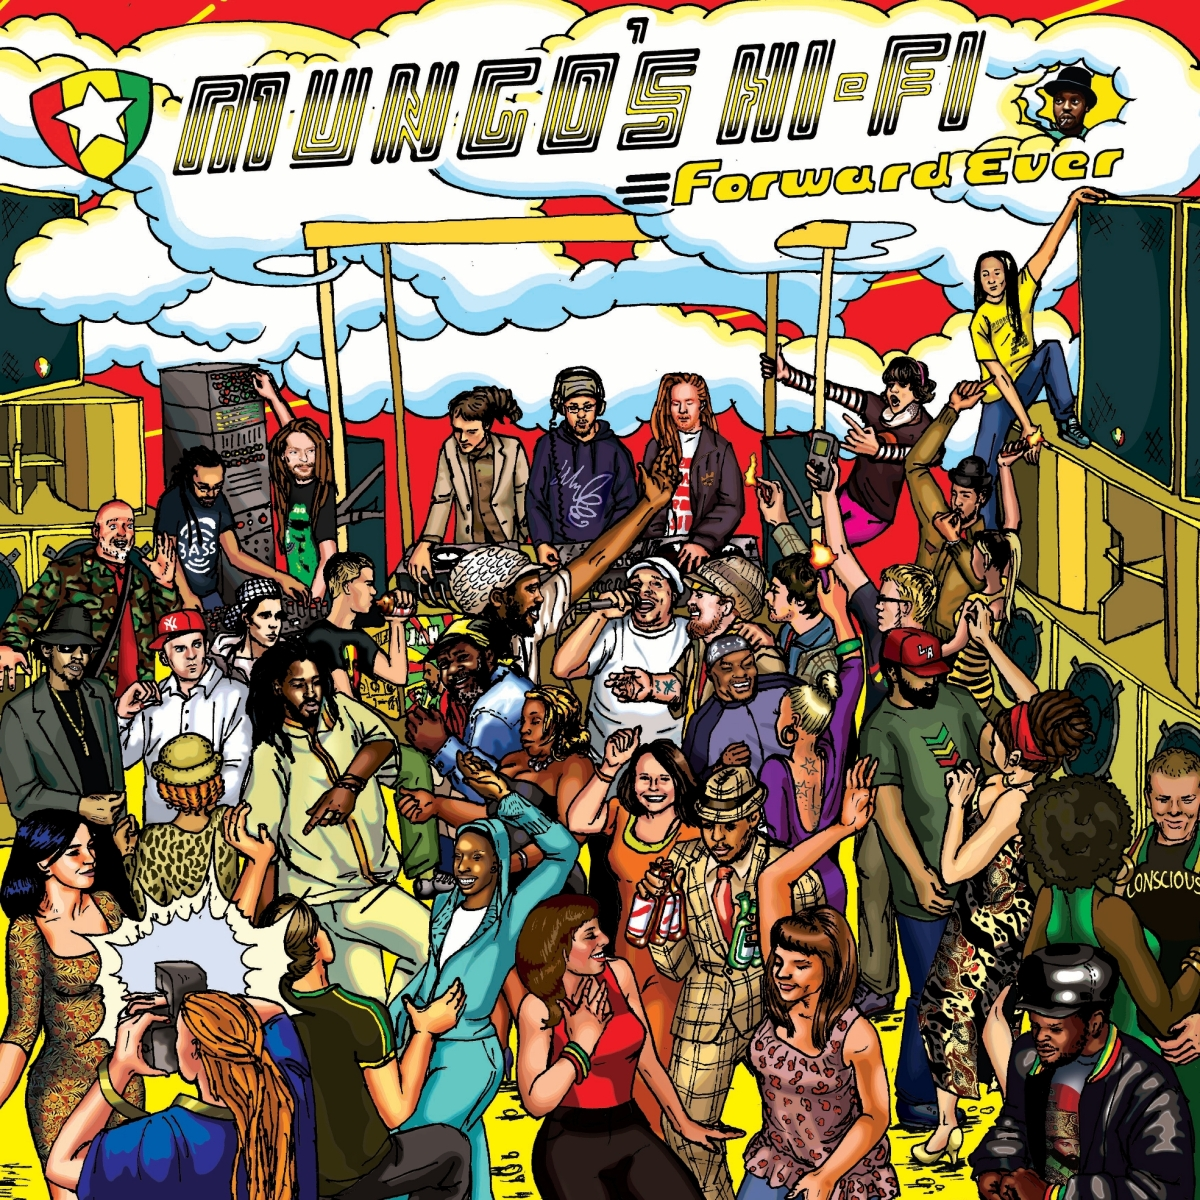 Jamaican Lifestyle Uk S Assimilation Of The Jamaican